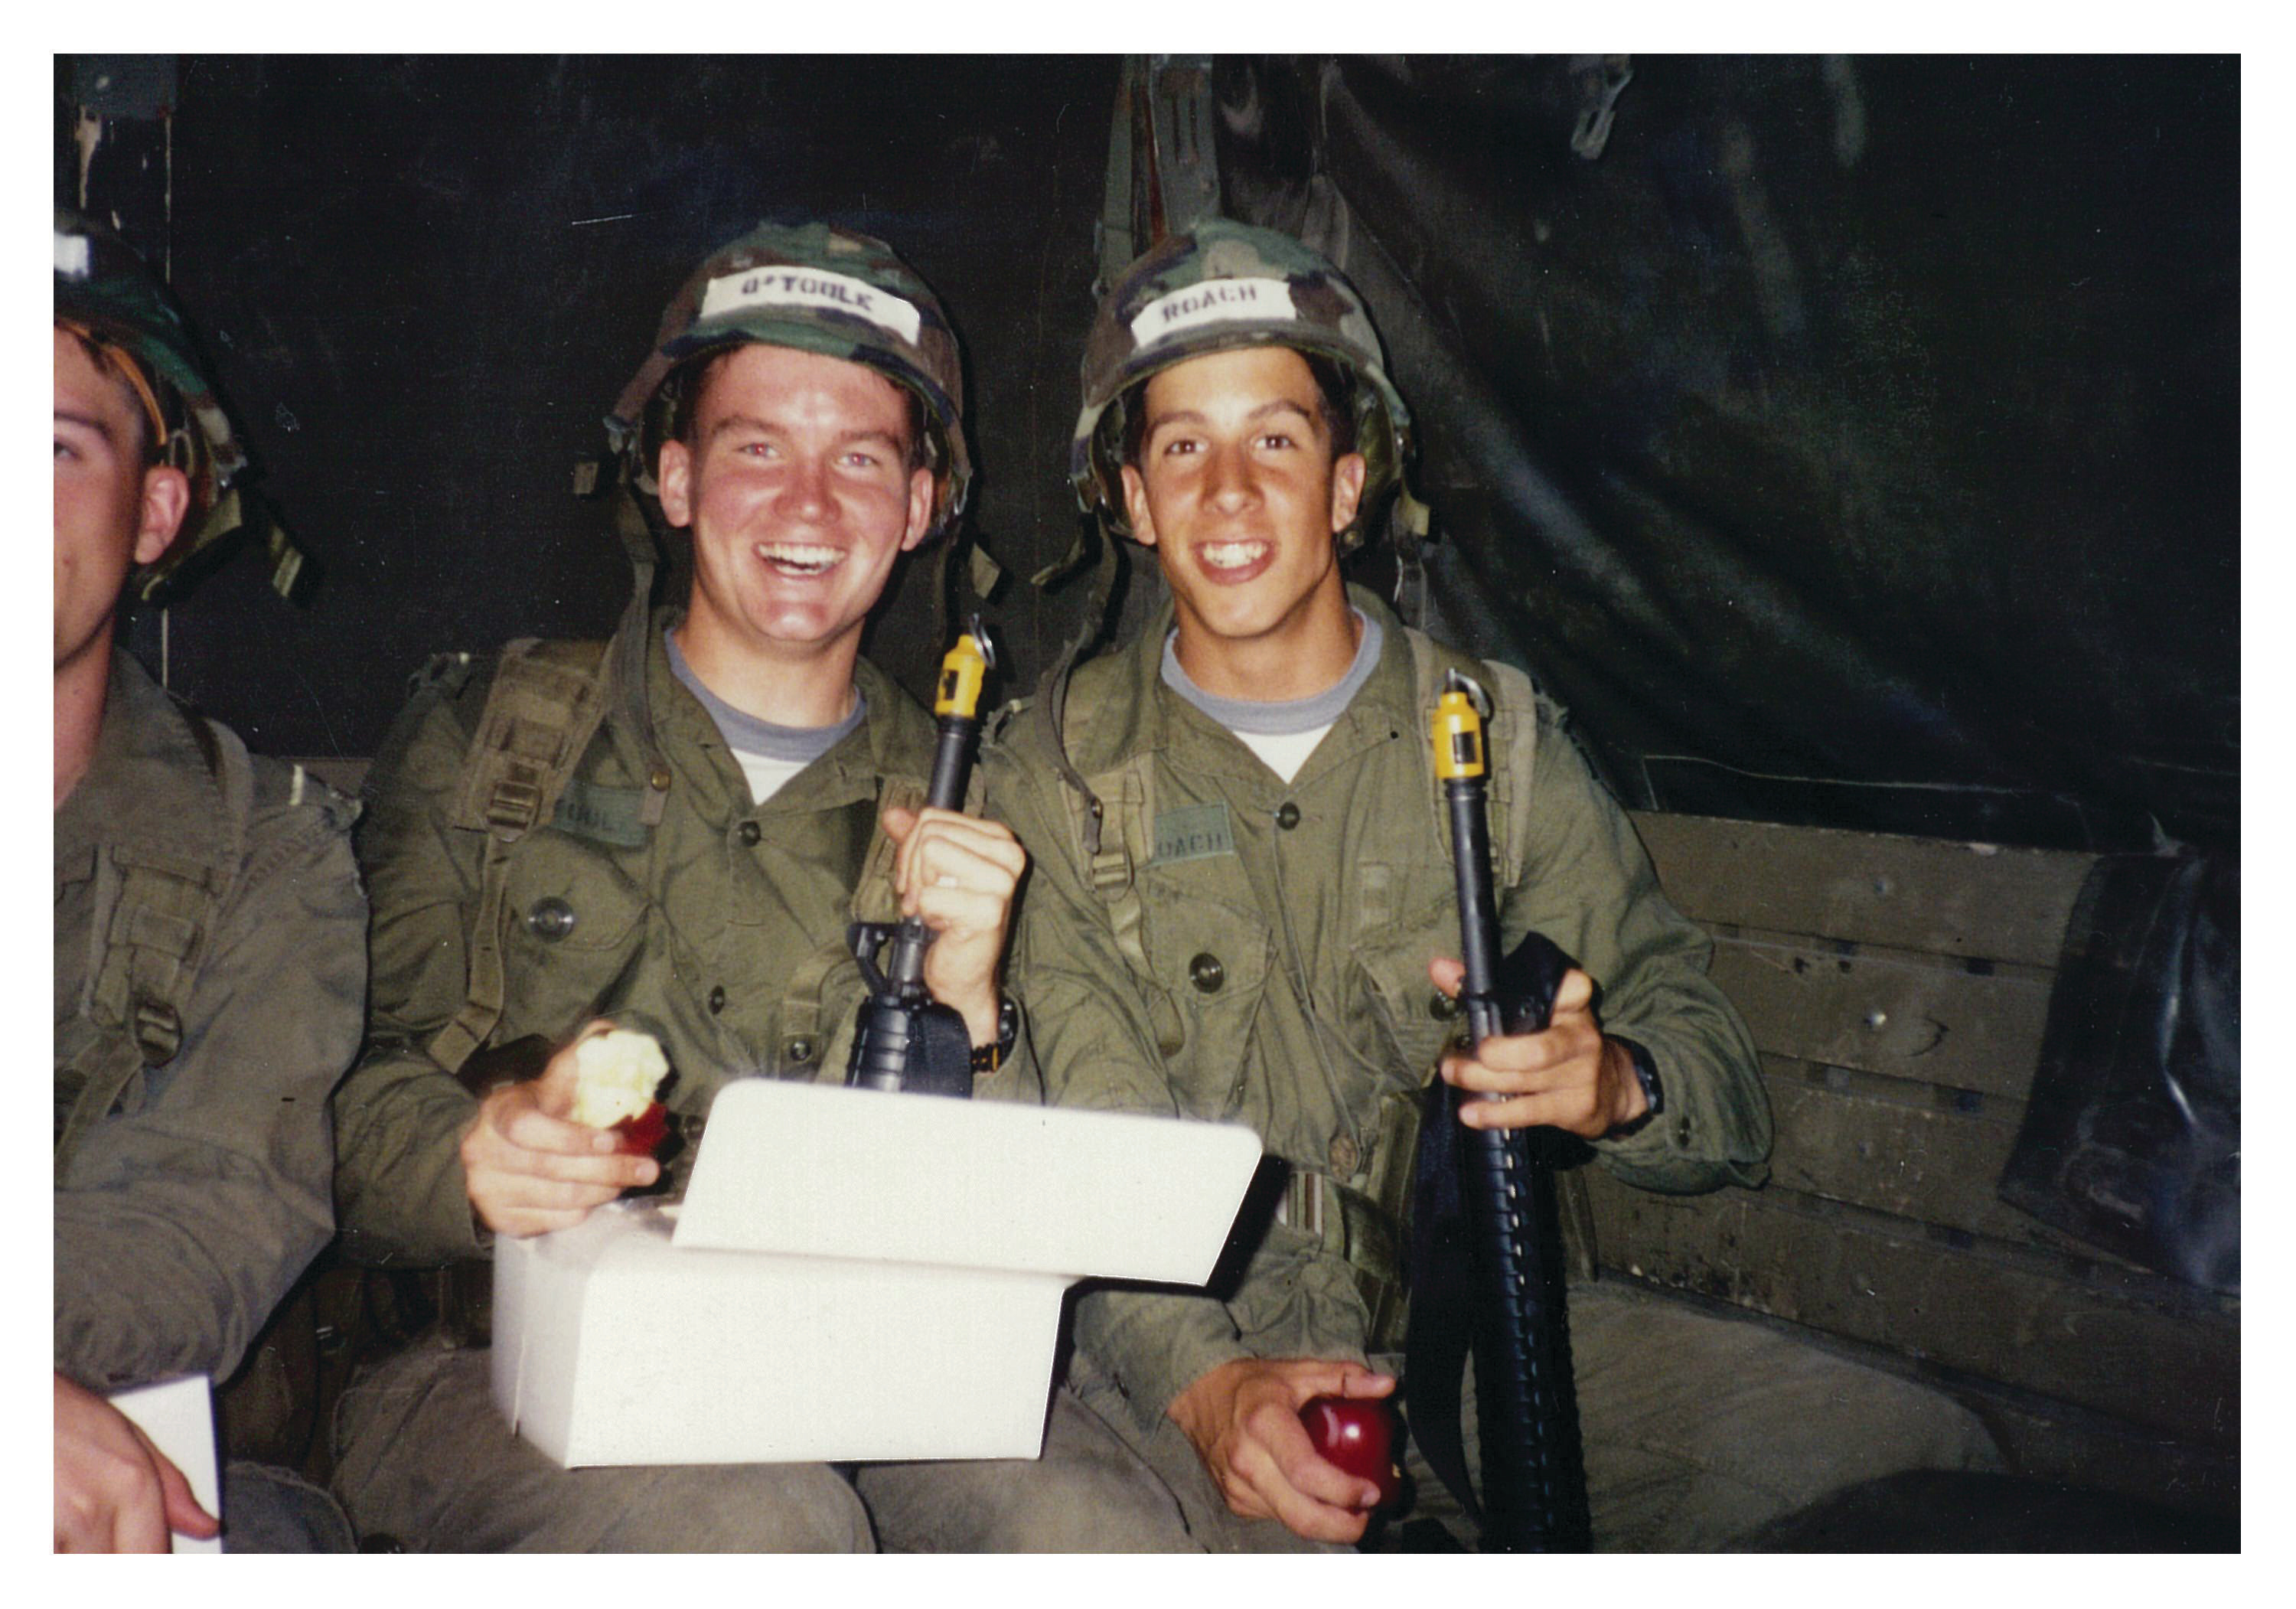 O'Toole (left) during basic training in B.C. in 1991 (Courtesy of Erin O'Toole)